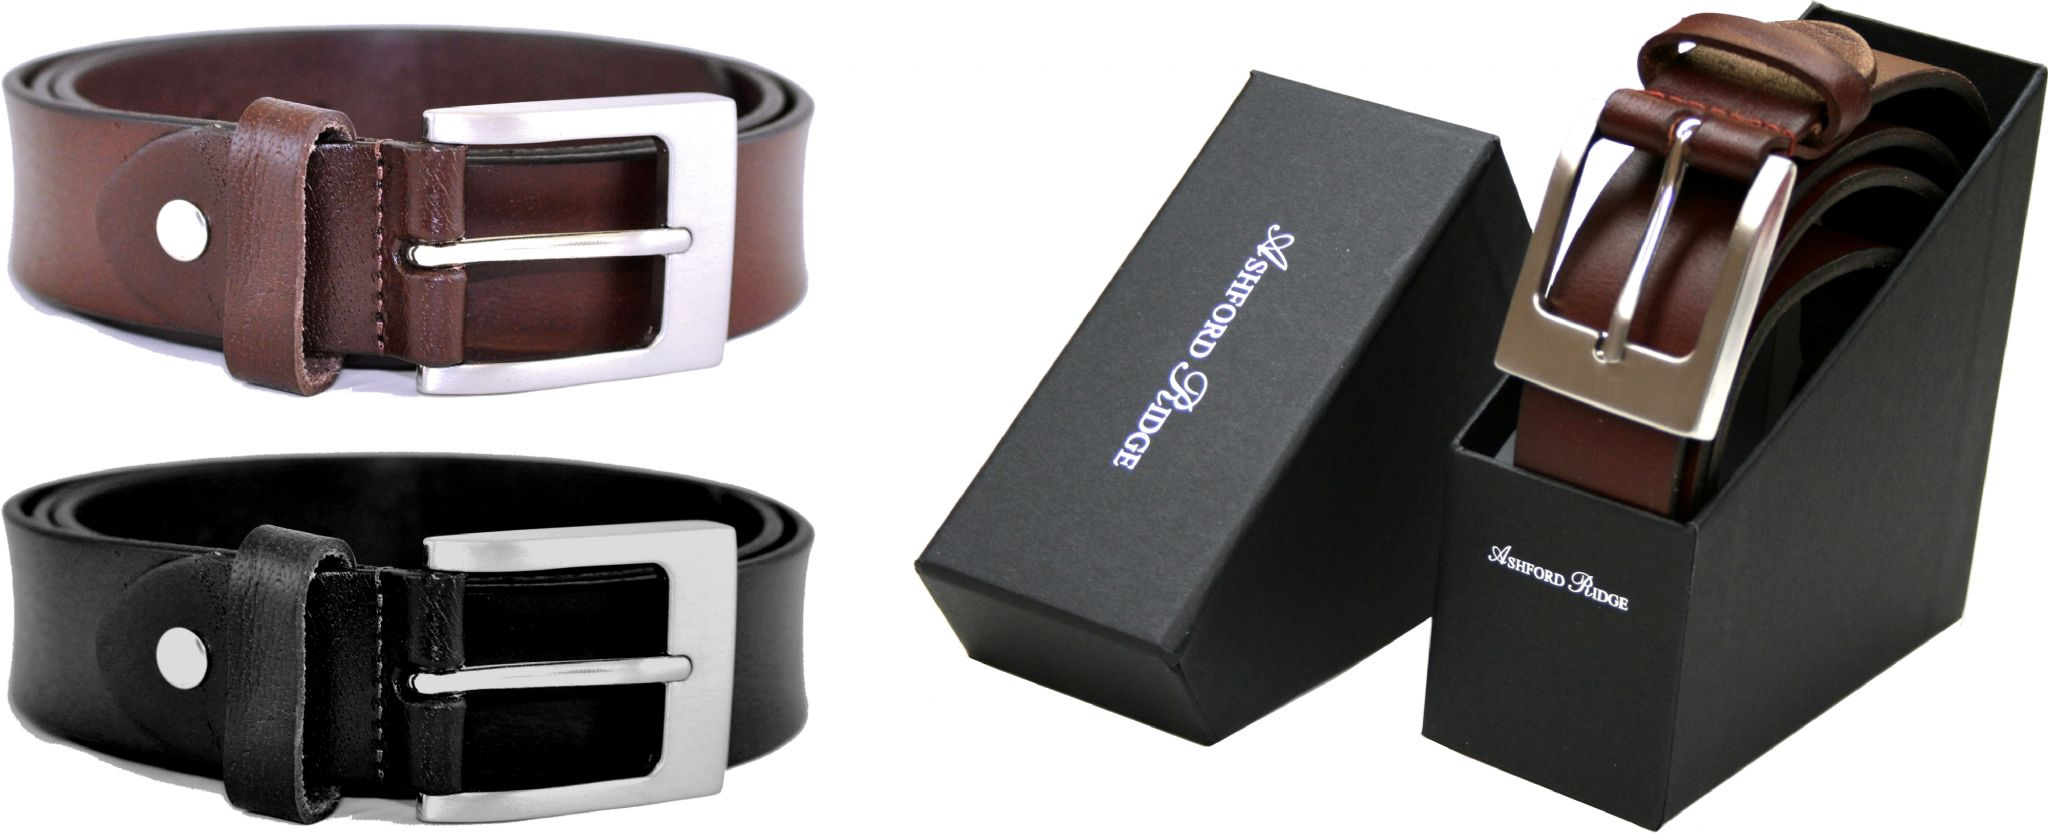 Gift Boxed Mens Classic Full Grain Leather Belt Made in UK Black or Brown